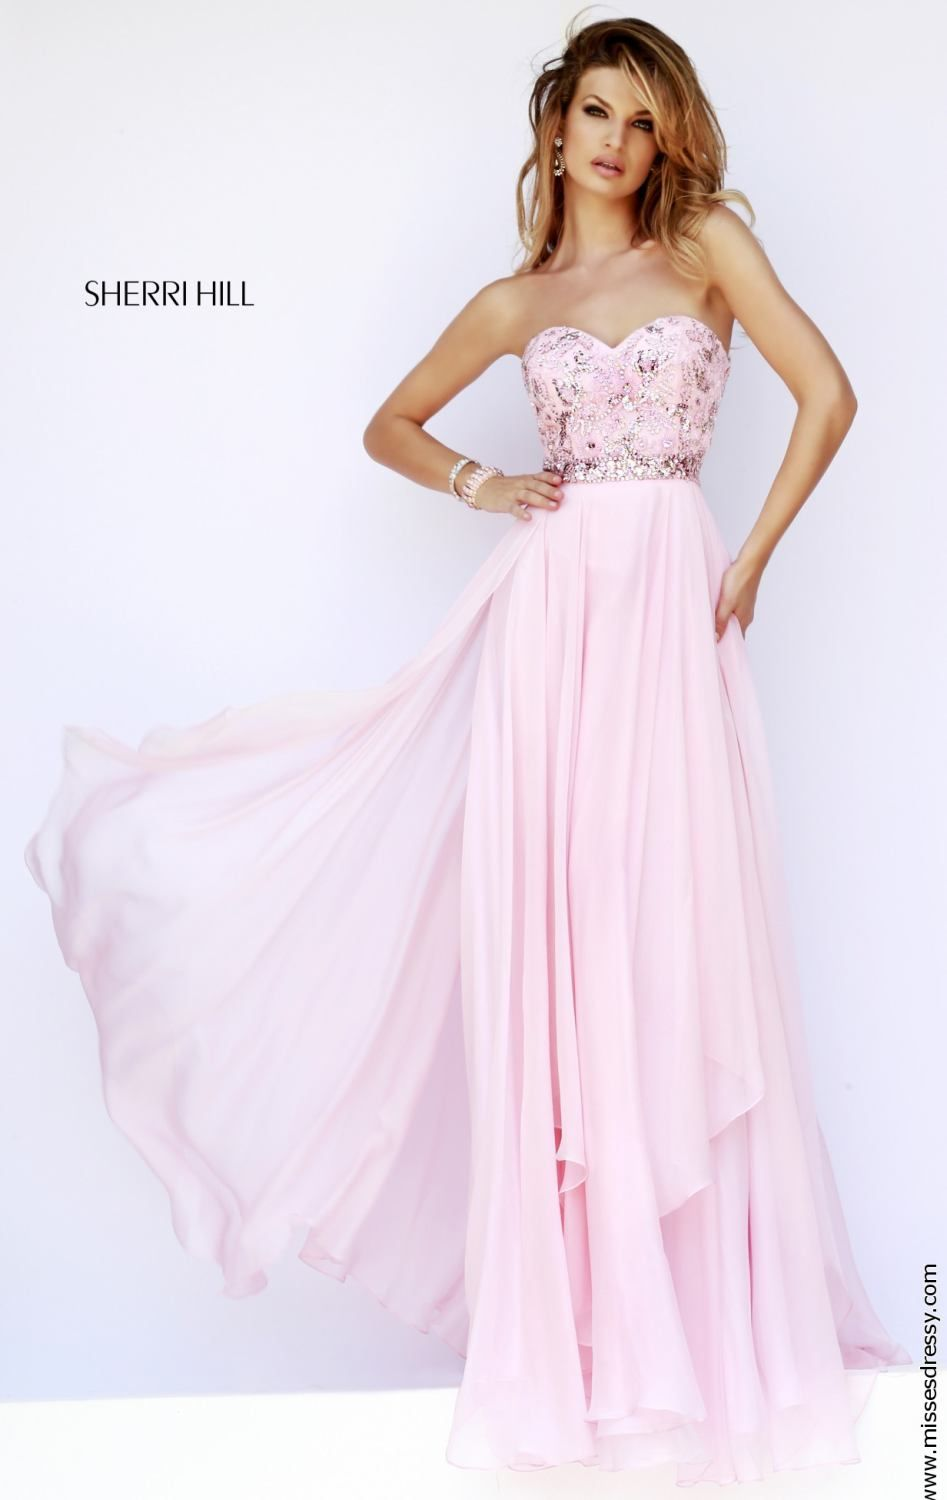 834b5a05a73 Chiffon Strapless 1943 Sherri Hill Pink Prom Dress---Might make a good  Rapunzel themed prom dress